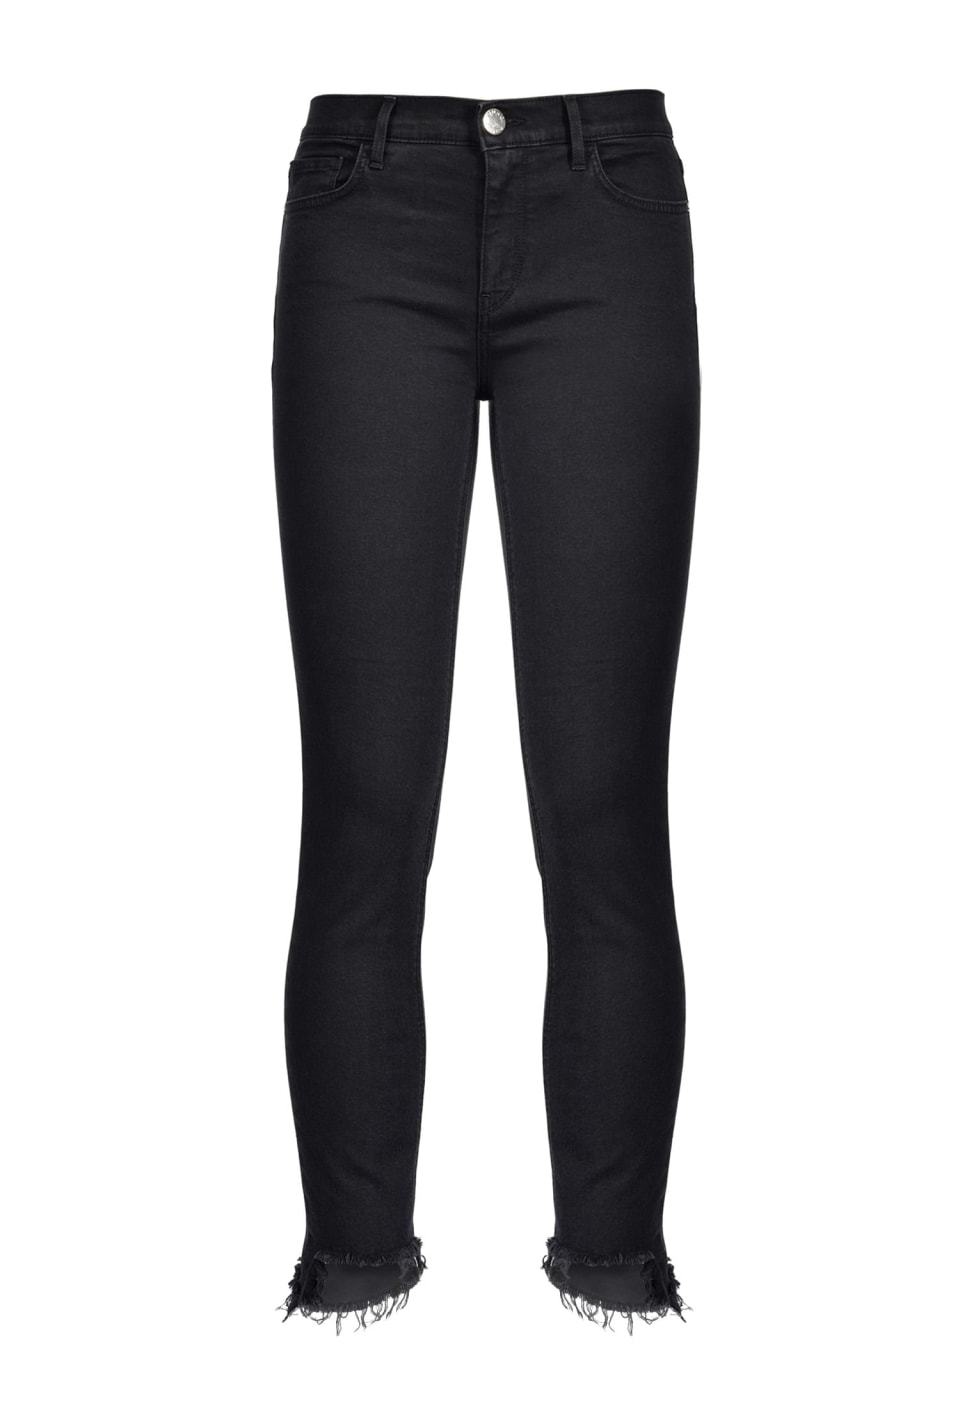 Skinny jeans in power stretch denim - Pinko